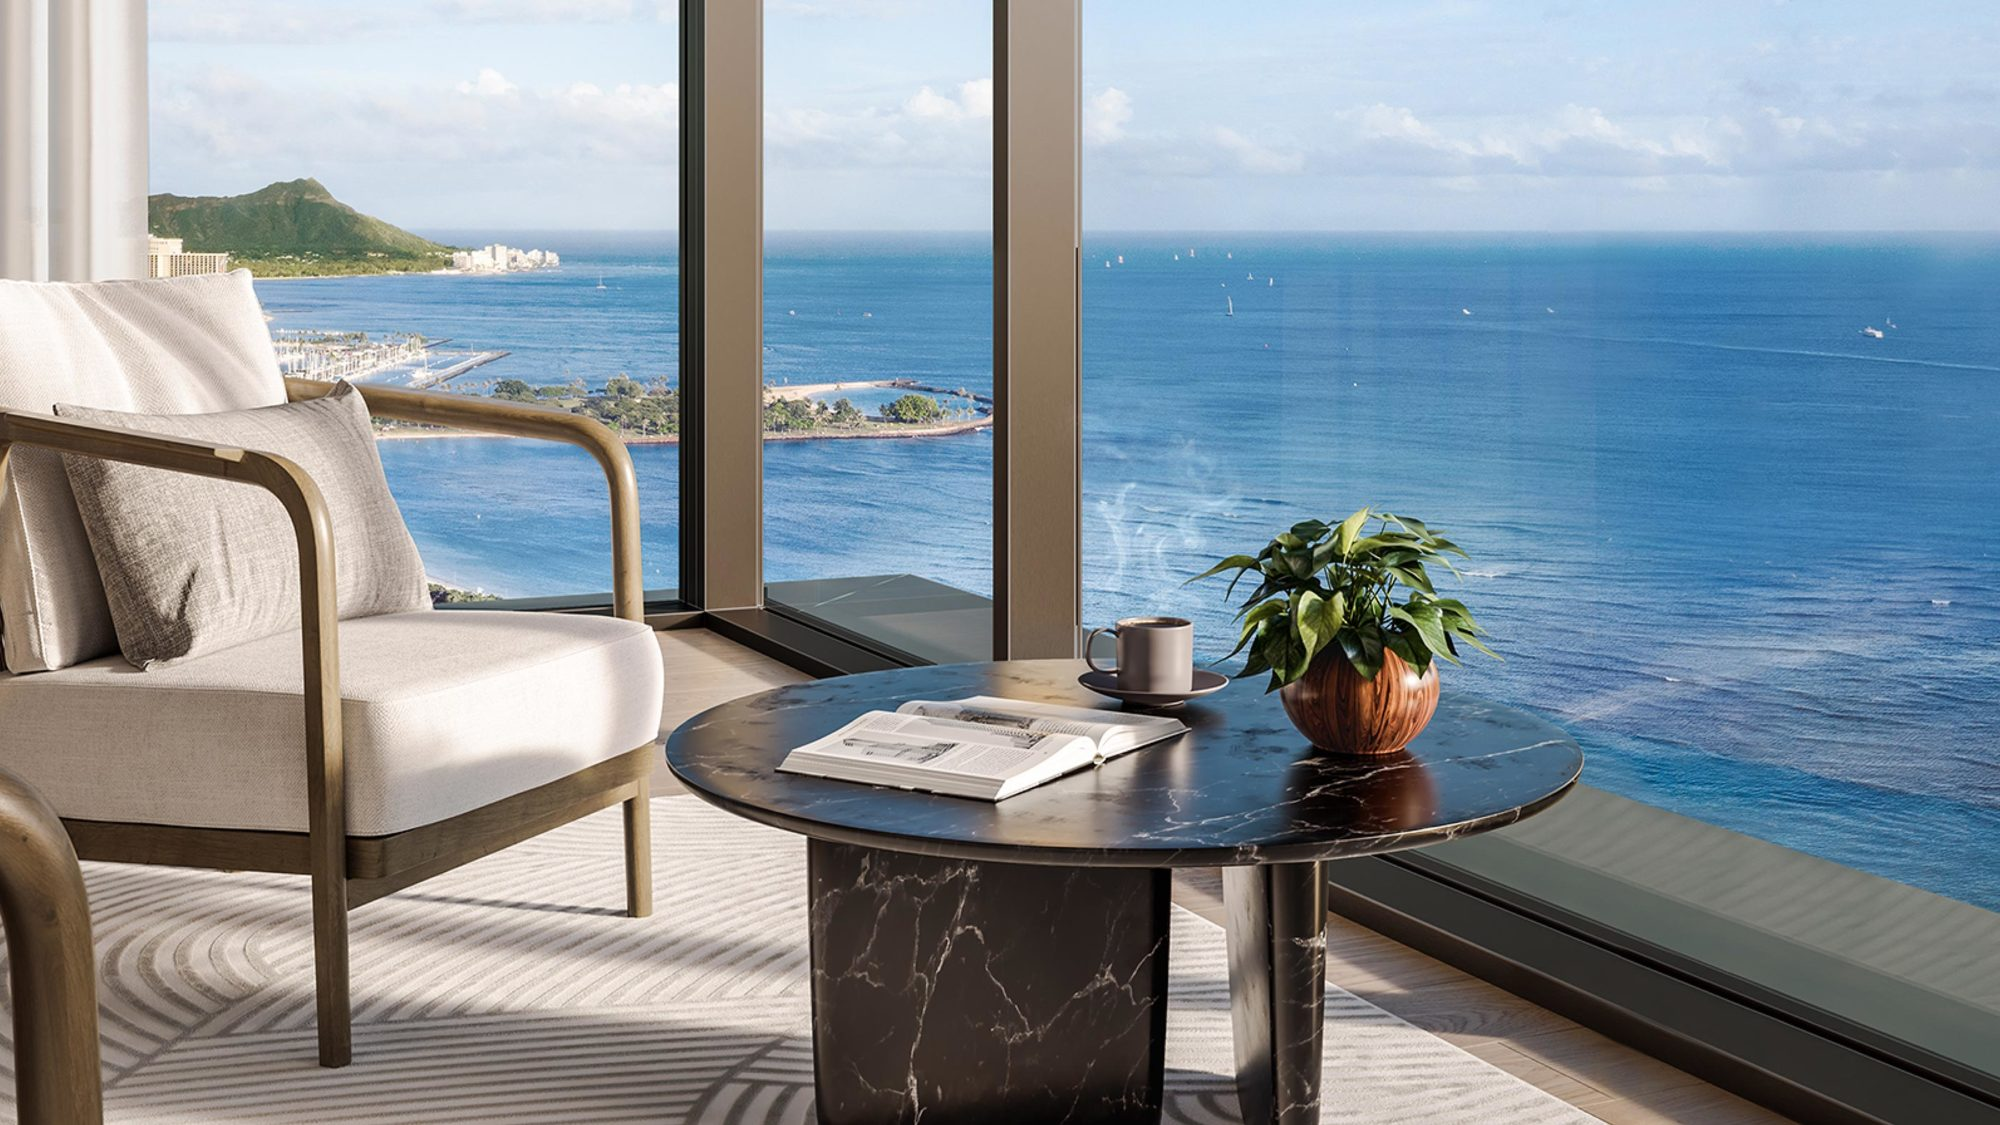 The corner area of a Victoria Place living room showing floor-to-ceiling windows overlooking the Pacific Ocean and Diamond Head.